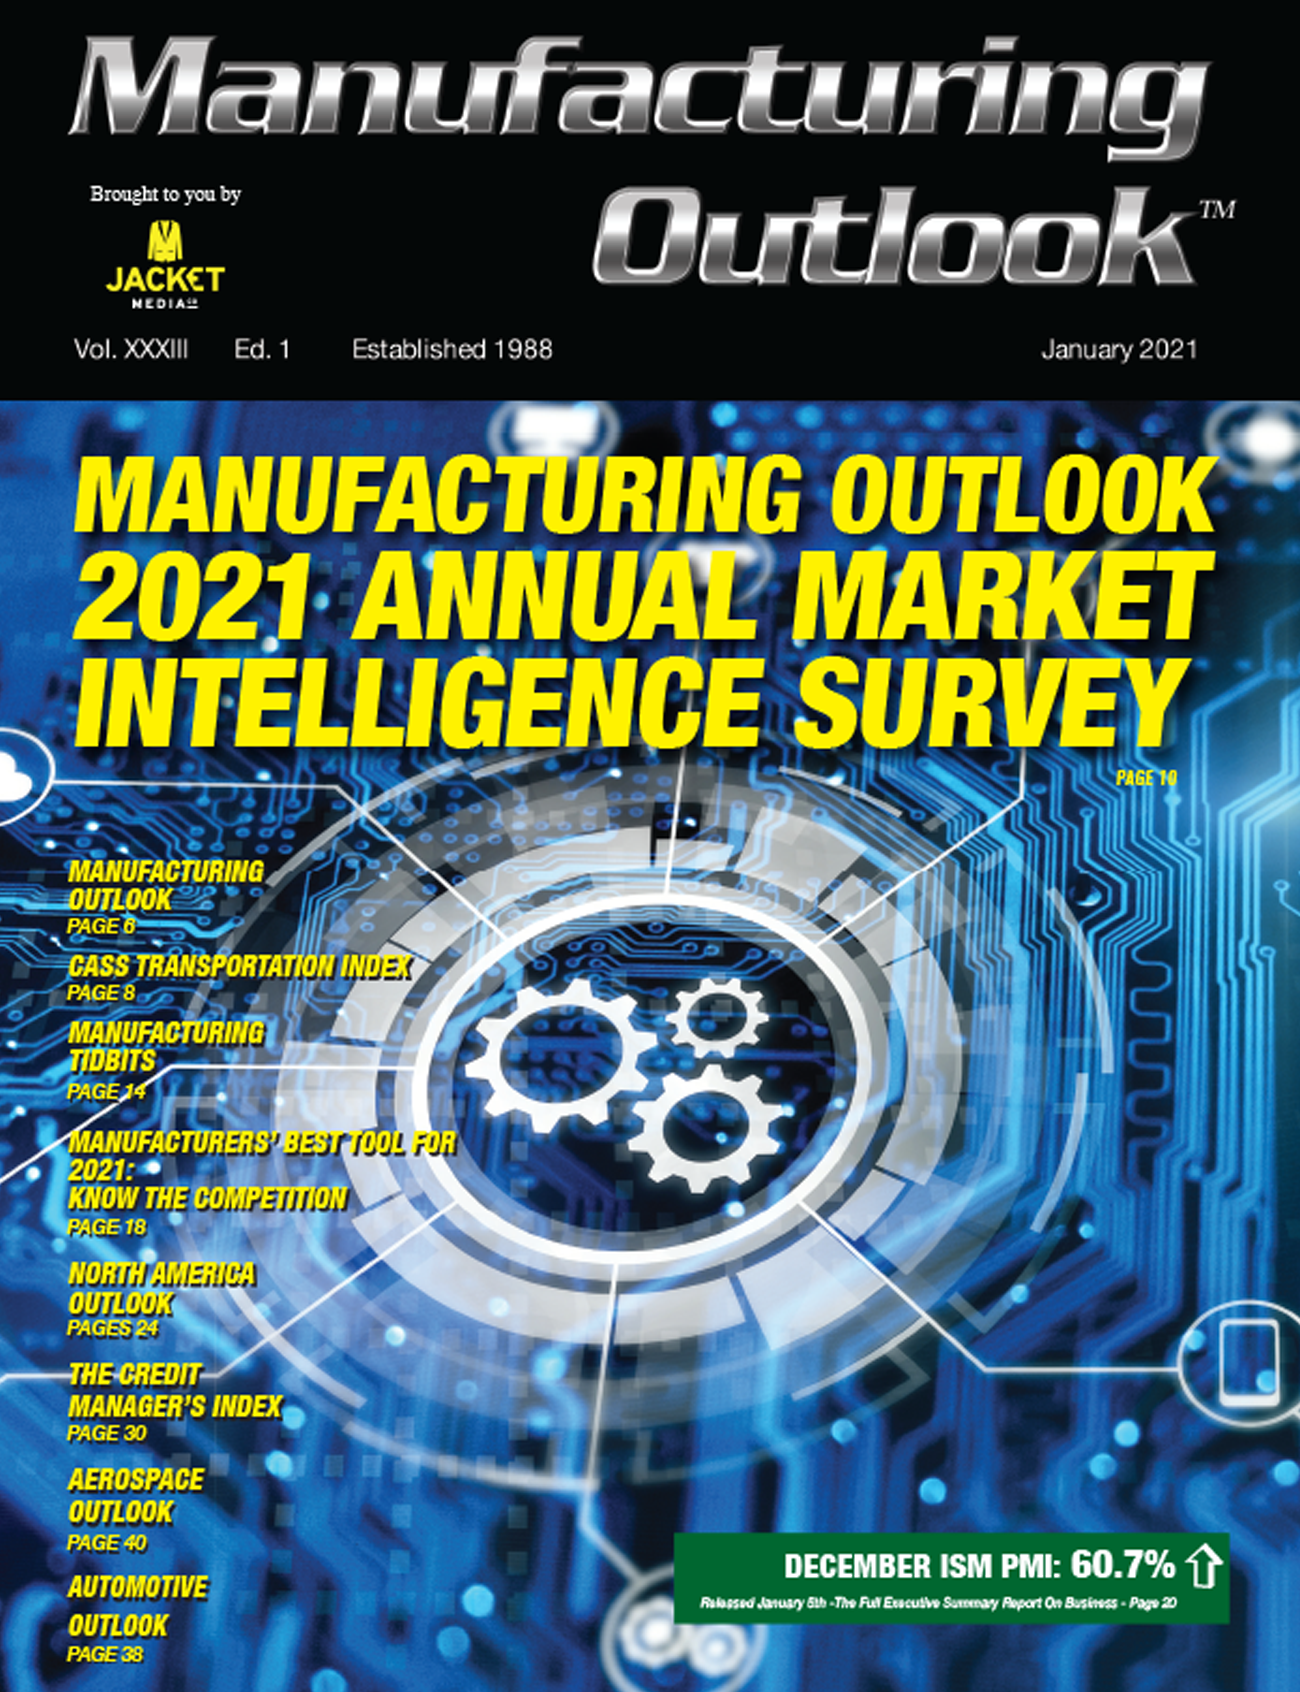 Manufacturing Outlook Jan 2021